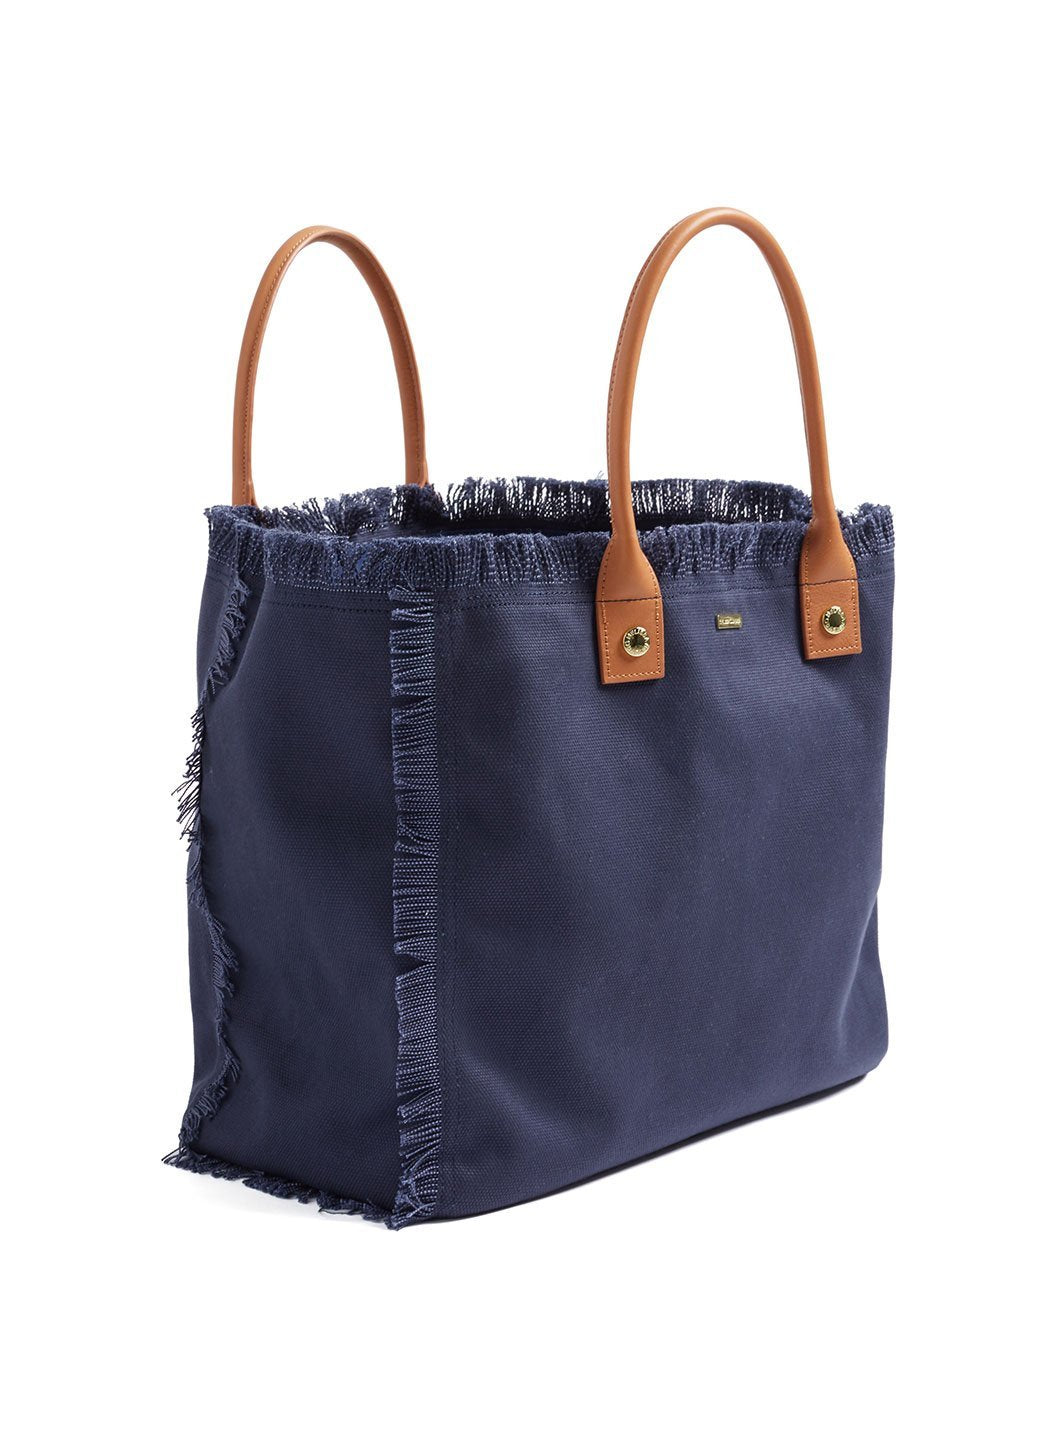 cap ferrat large beach tote navy 2 2019